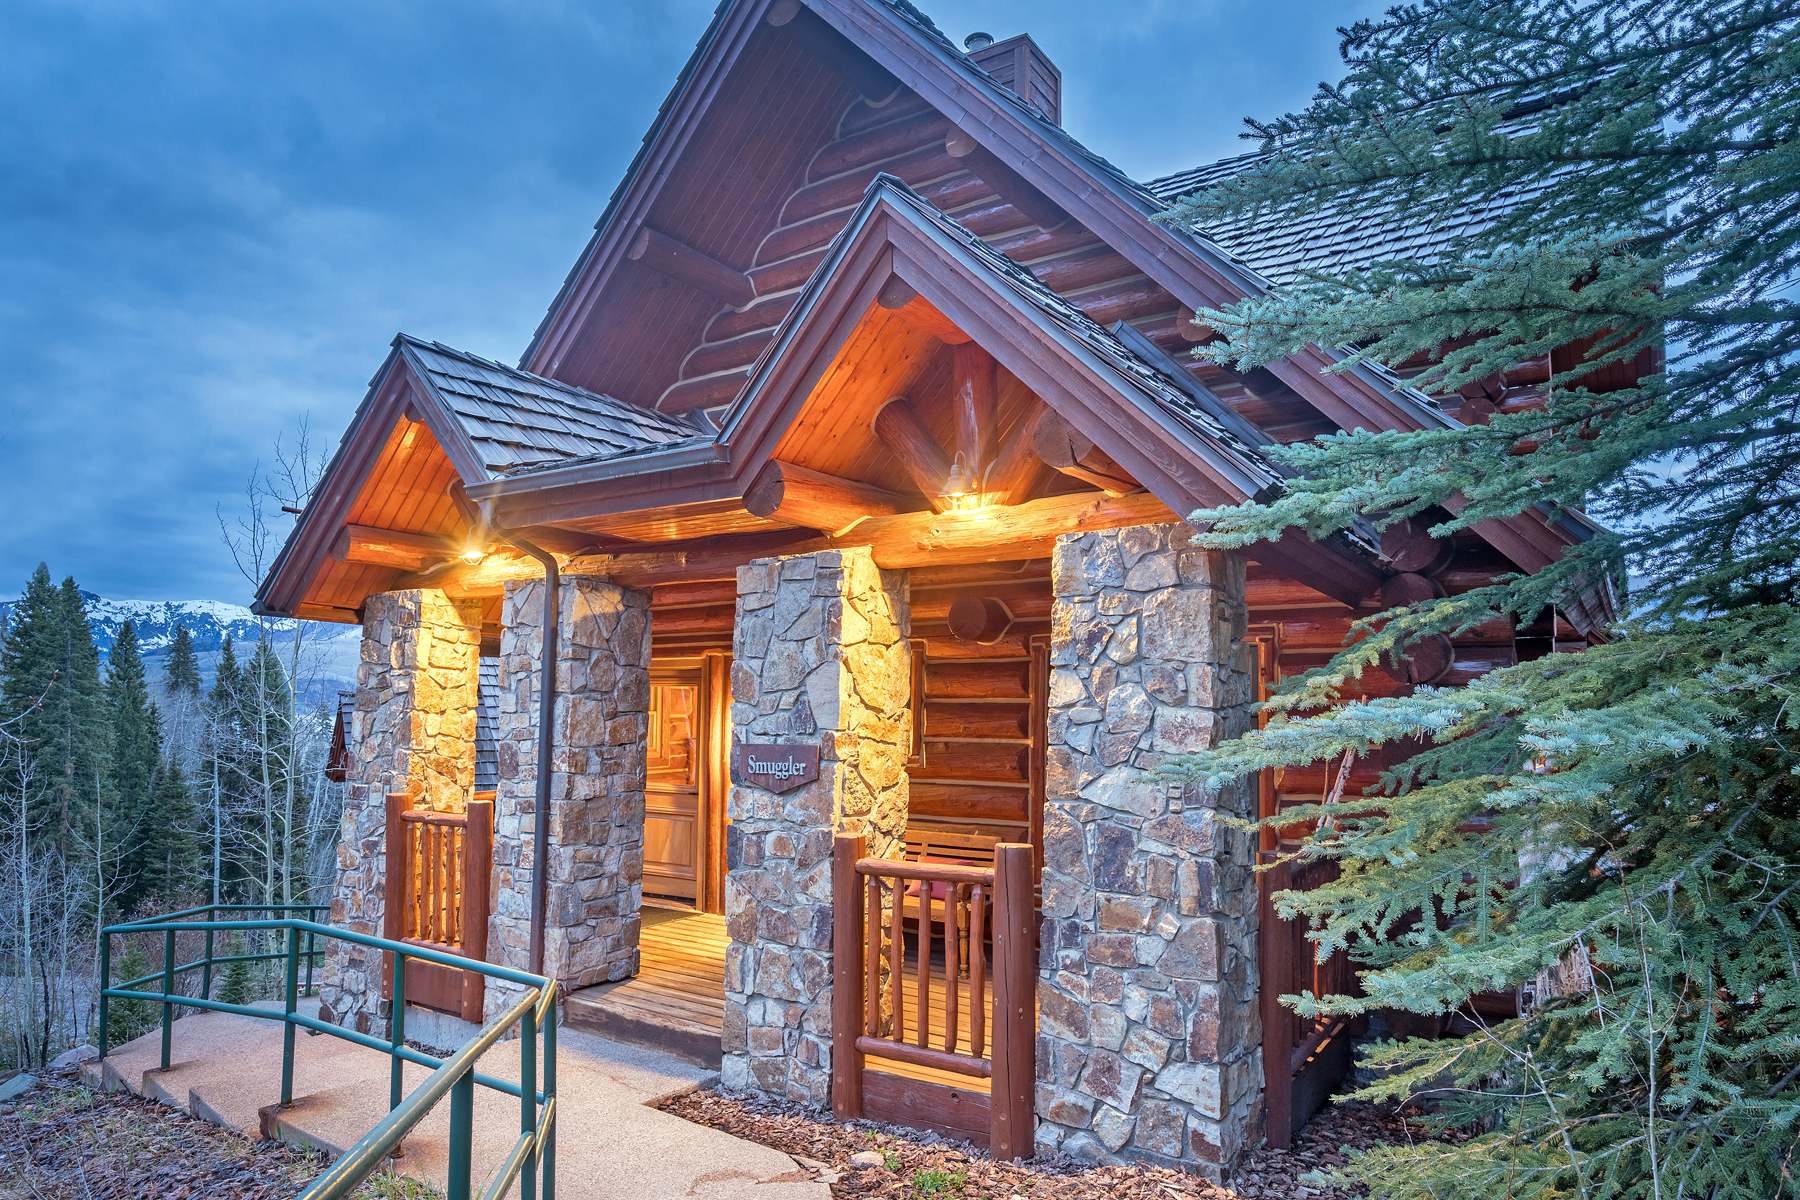 Кондоминиум для того Продажа на Mountian Lodge - Smuggler Cabin 7 457 Mountain Village Blvd., Unit 7, Telluride, Колорадо, 81435 Соединенные Штаты